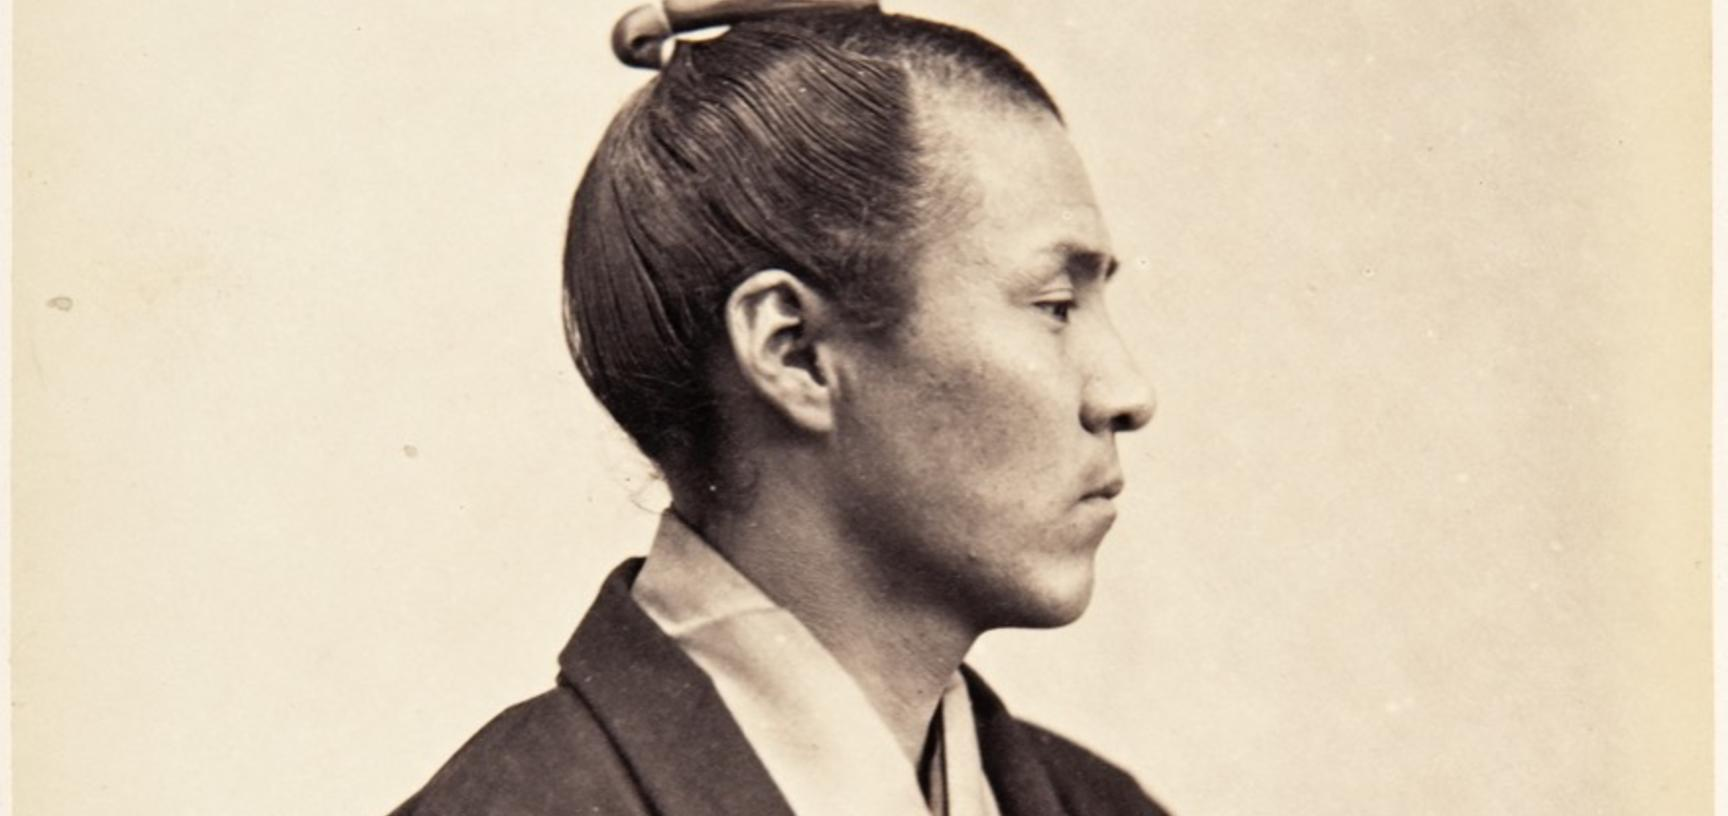 Profile portrait of Taichi Tanabe. This image reveals the photographer's training as an assistant at the Muséum d'Histoire Naturelle in Paris, posing his subjects in the ethnographic or 'scientific' style of the day. Potteau's photographs were considered